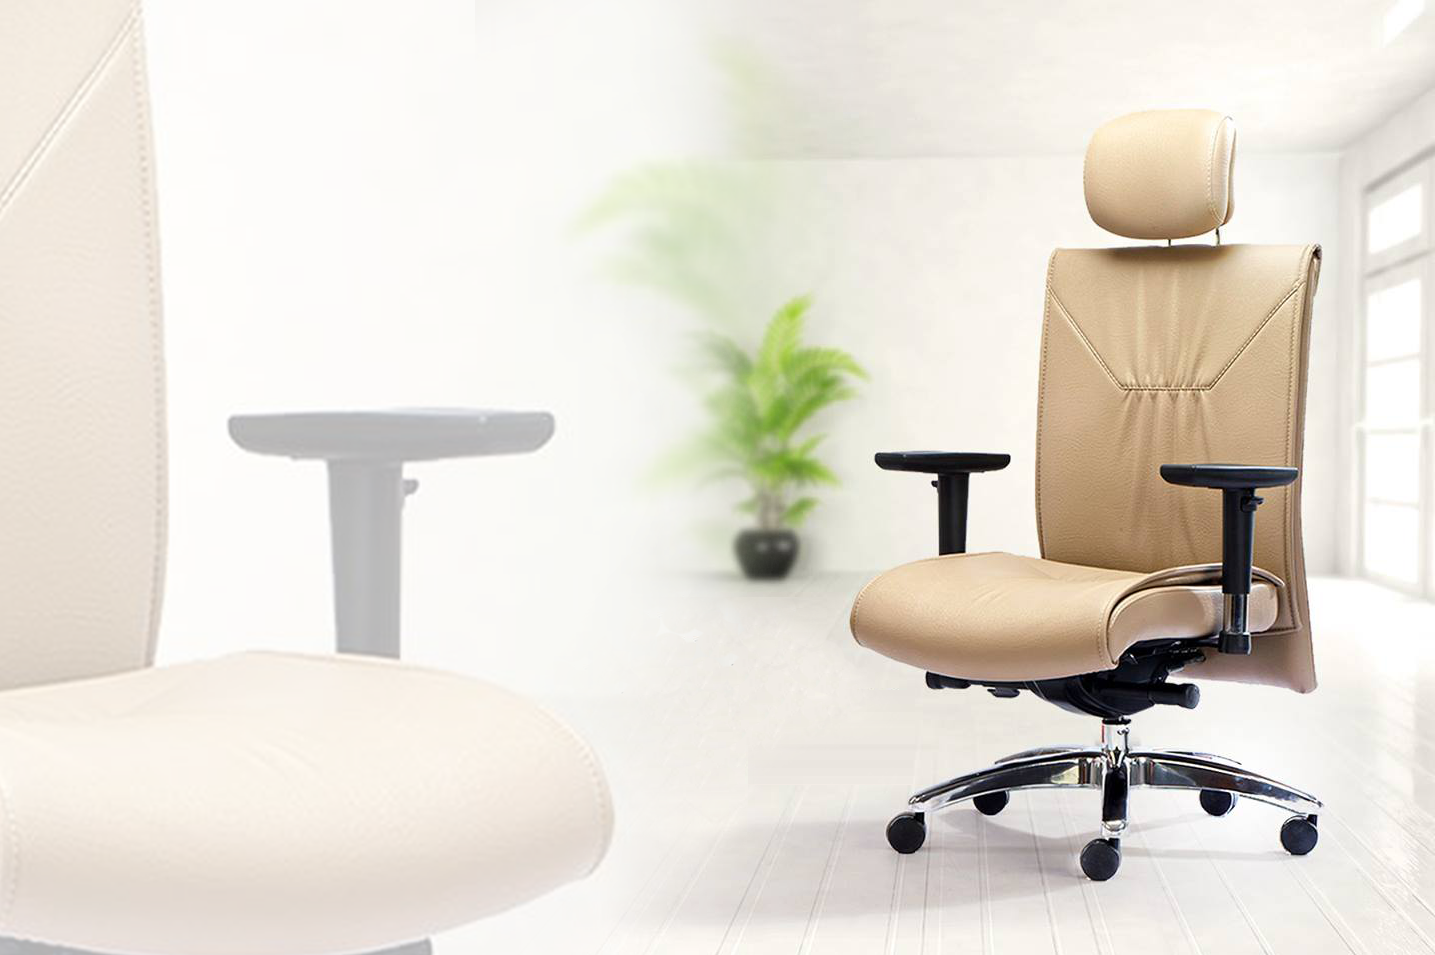 Ergonomic Furniture Ergonomic Chair No Back Fice Ergonomic Furniture Definition Ergonomic Chair